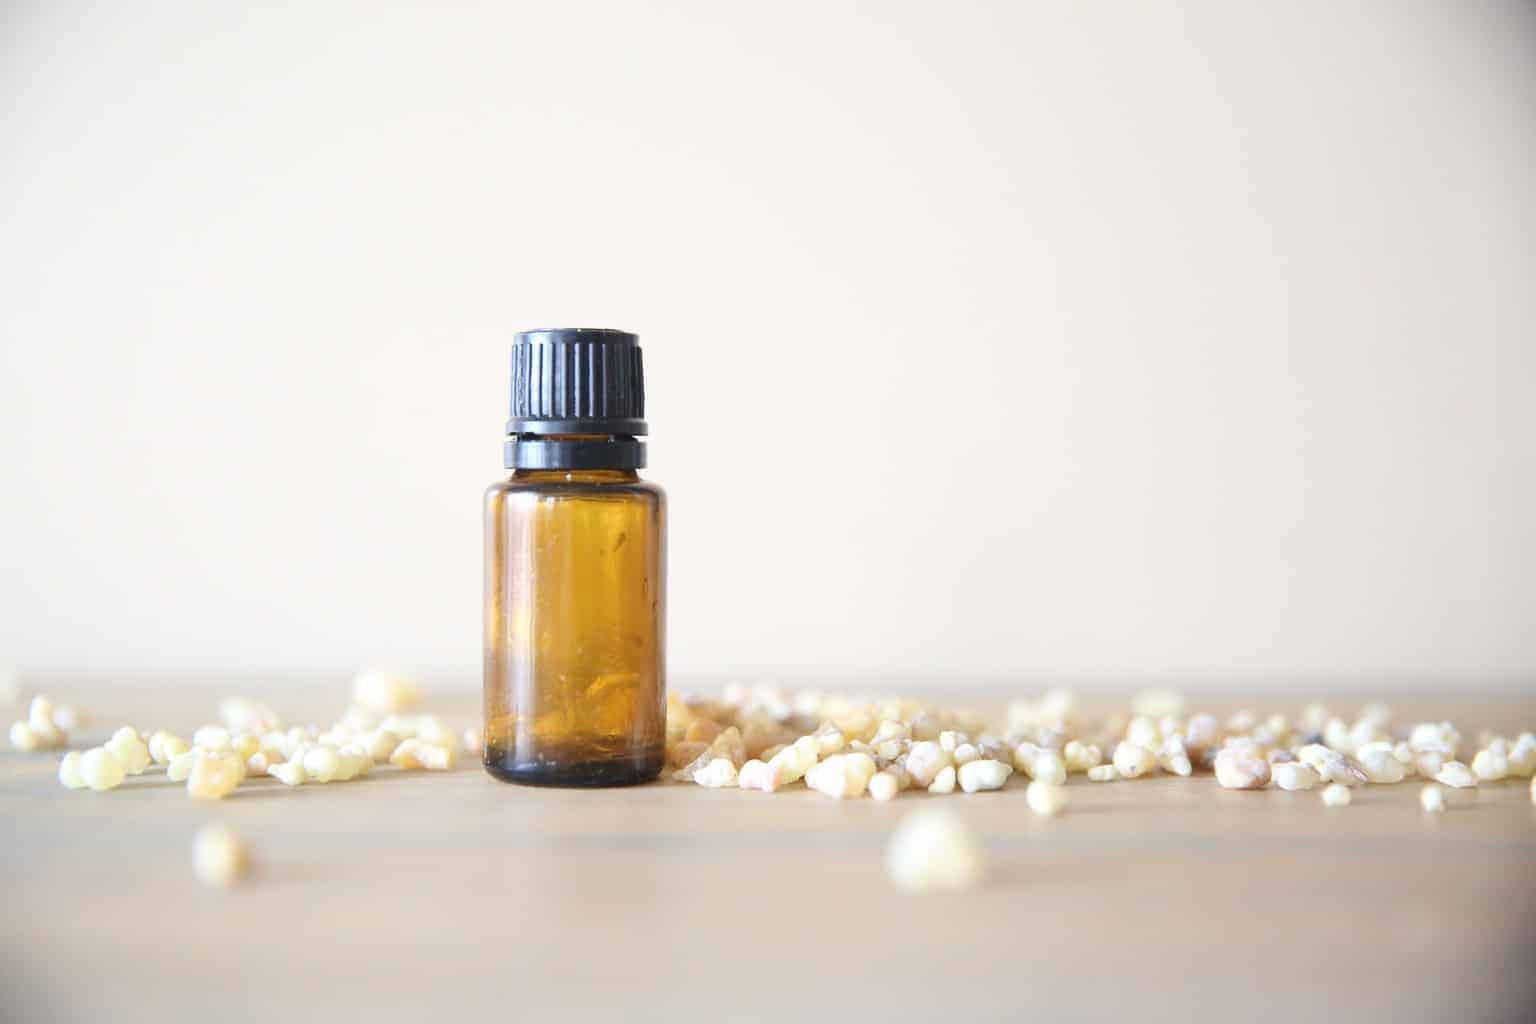 Using myrrh essential oil can help promote a better night sleep, moisturize the skin, and support the immune system.